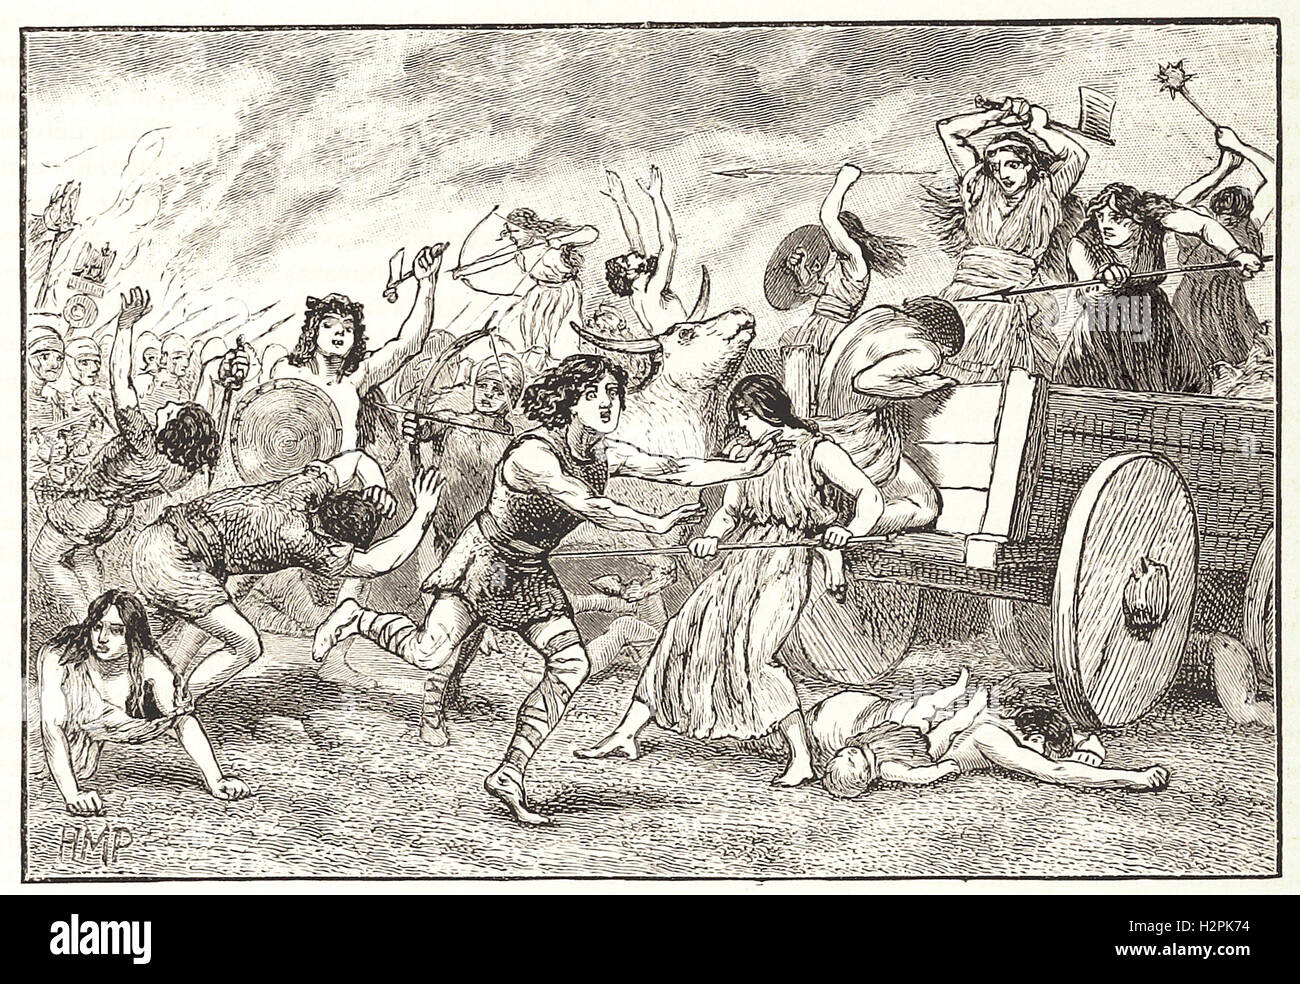 THE BATTLE OE VERECELLAE - from 'Cassell's Illustrated Universal History' - 1882 - Stock Image